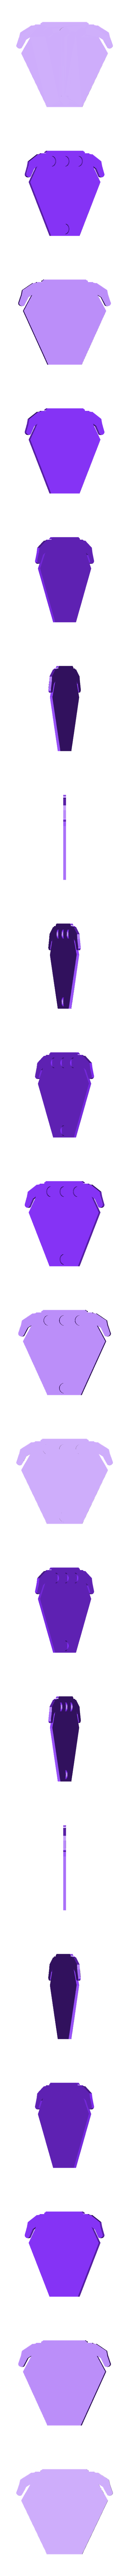 Arc_Reactor_Infinity_War_Bottom.stl Download free STL file Tony Stark Arc Reactor Infinity War & Endgame • 3D printing template, valertale